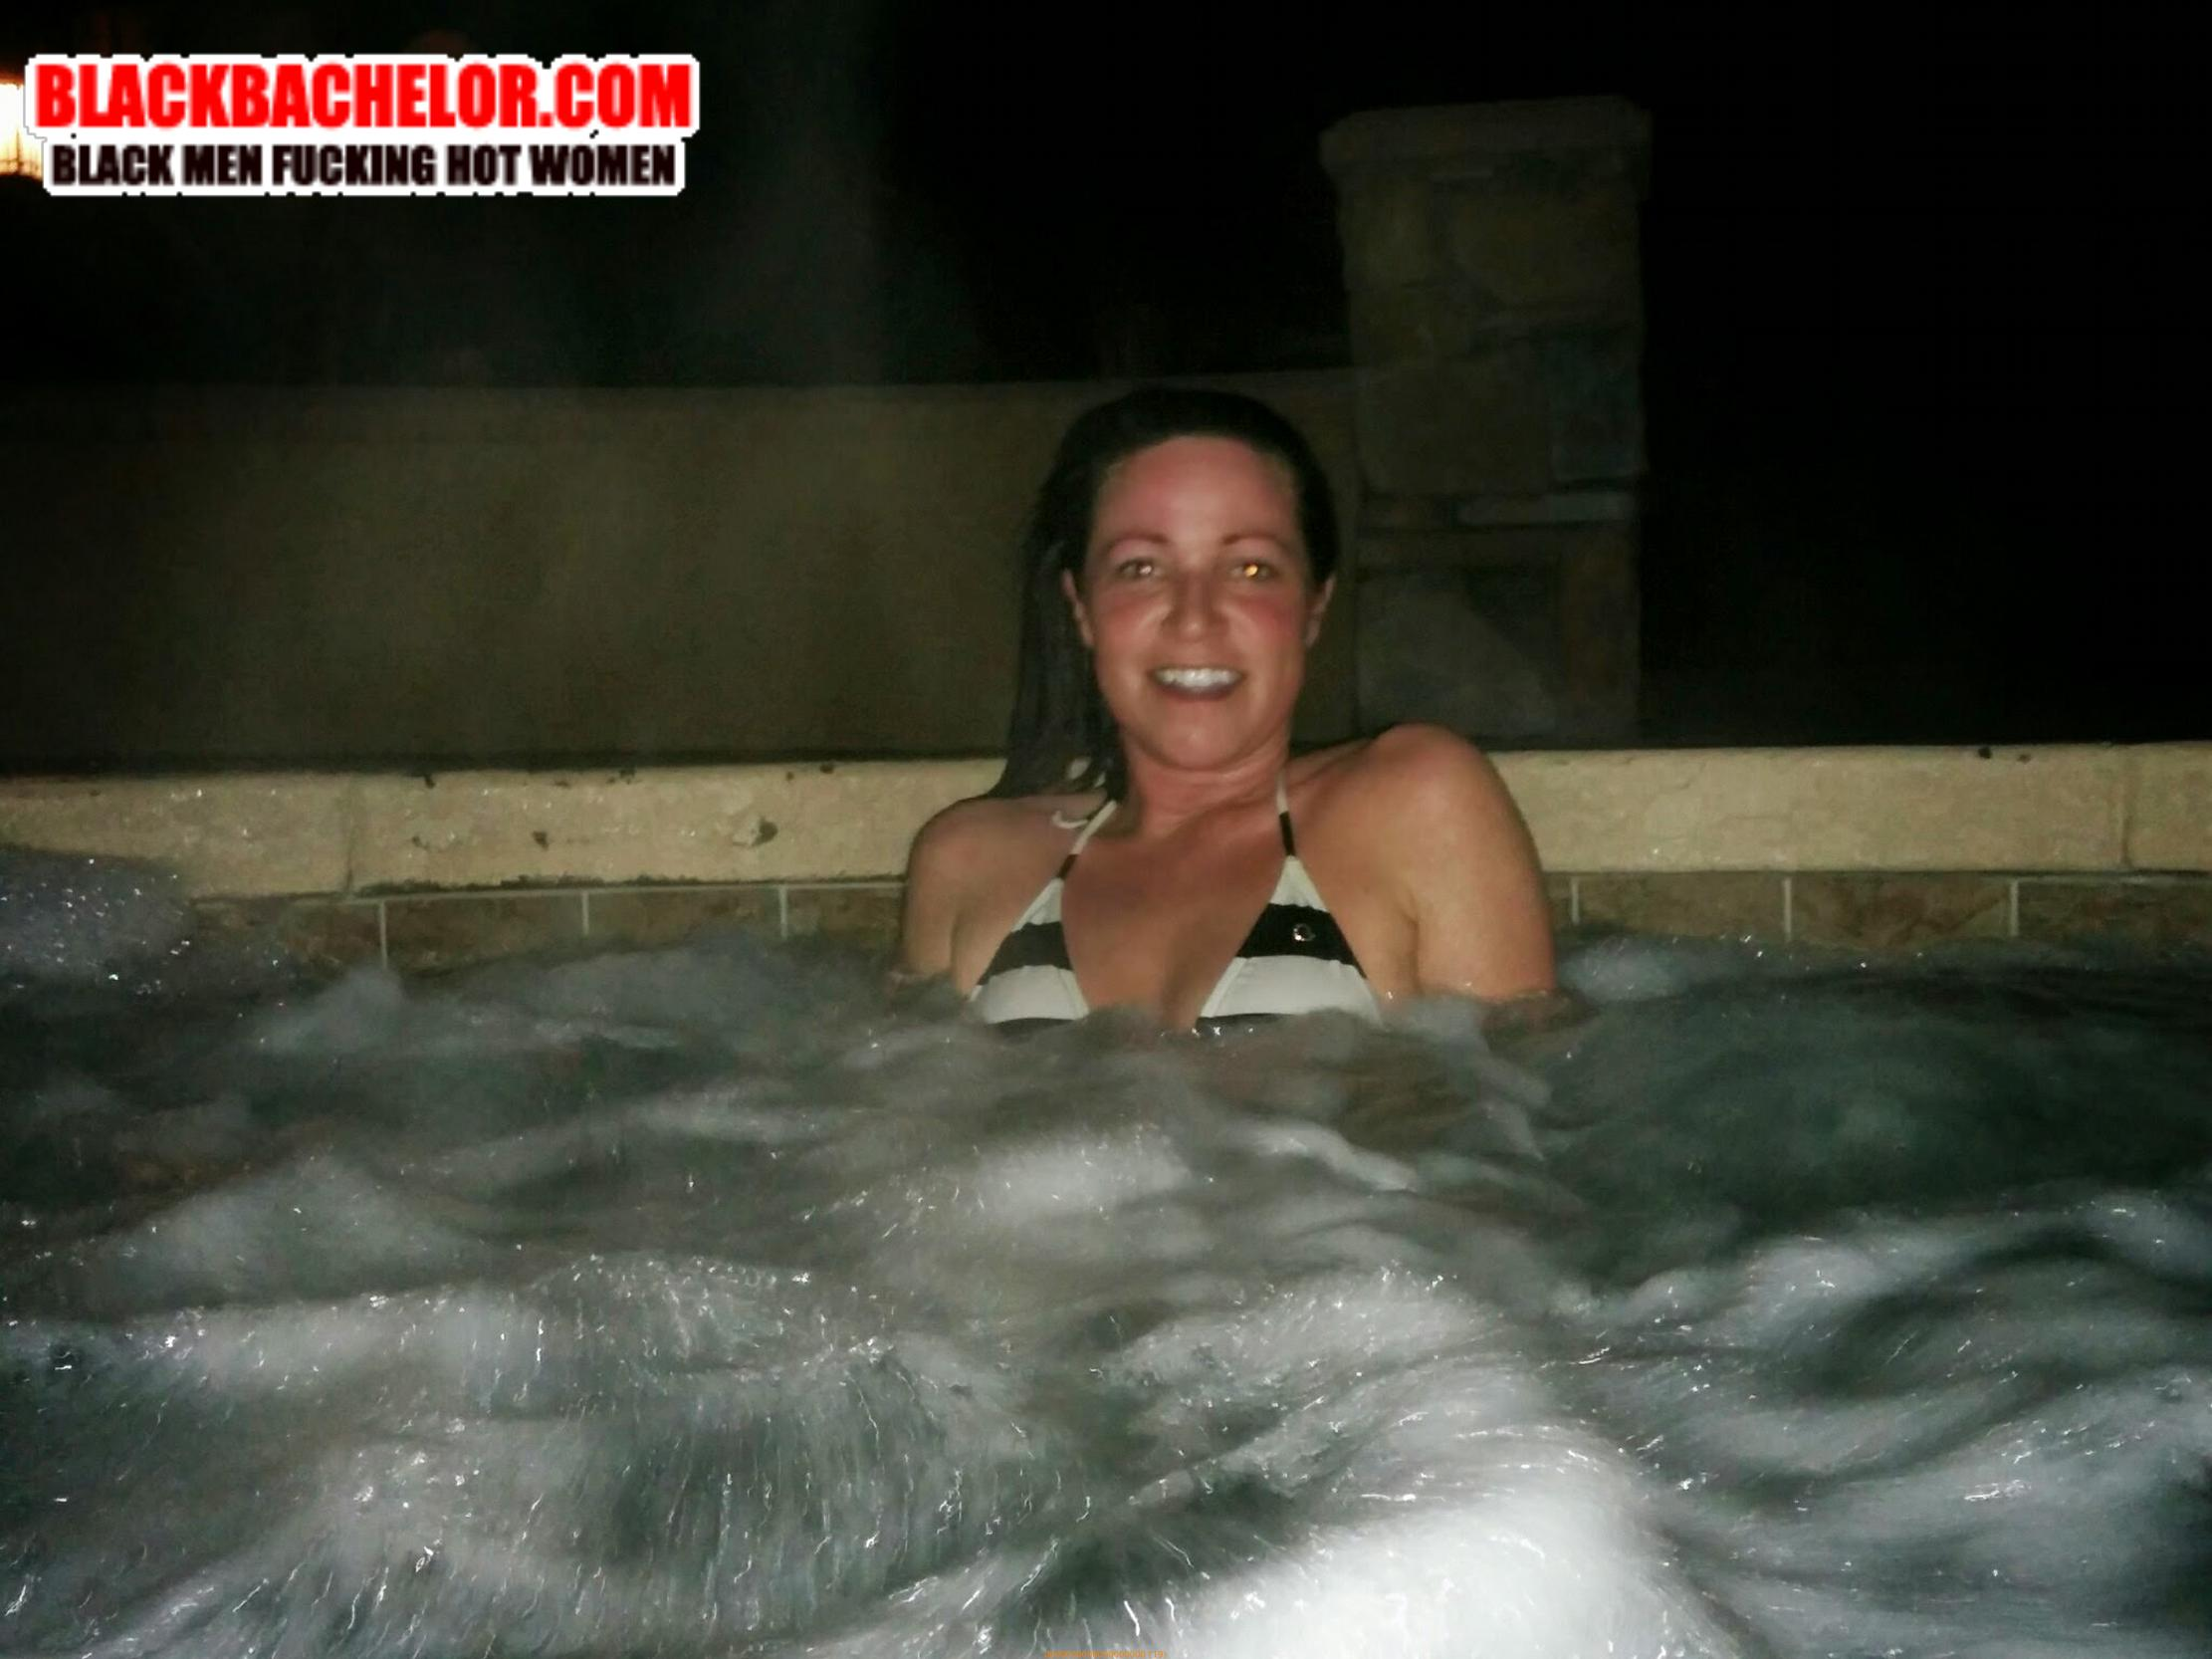 hardcore sex in a hot tub